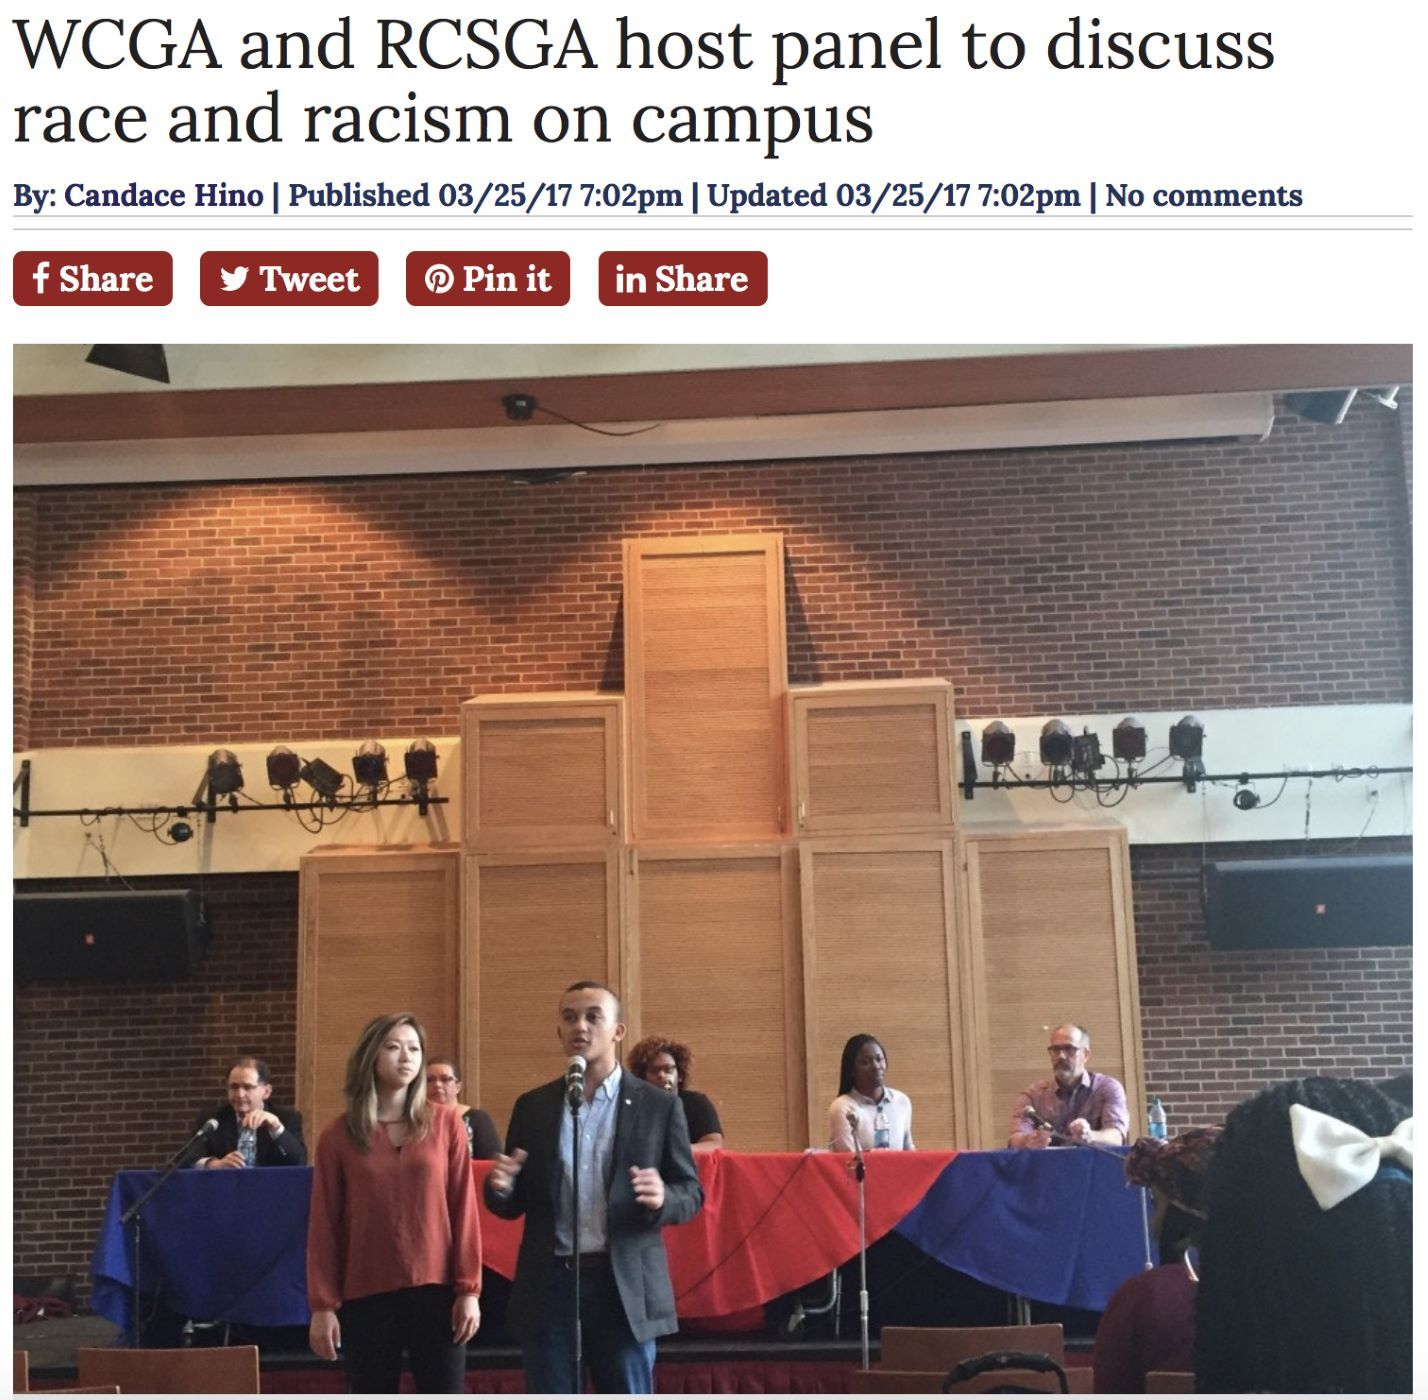 University of Richmond Collegian article from March 2017 in response to a recent panel discussion on campus race and racism. This is one of many examples of events promoting diversity and inclusivity that take place in the Tyler Haynes Commons.